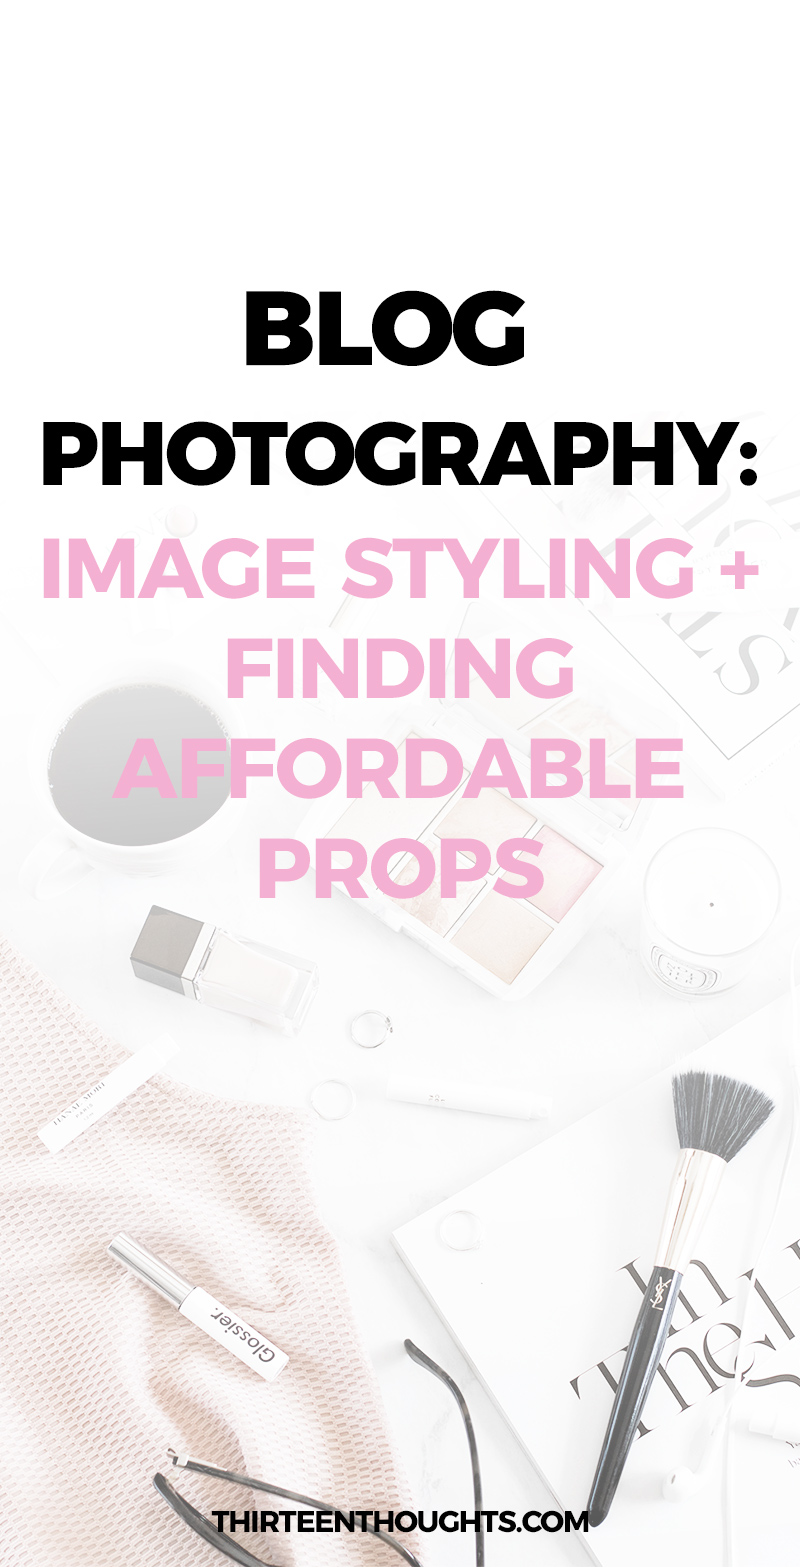 Blog Photography Styling + Affordable Props